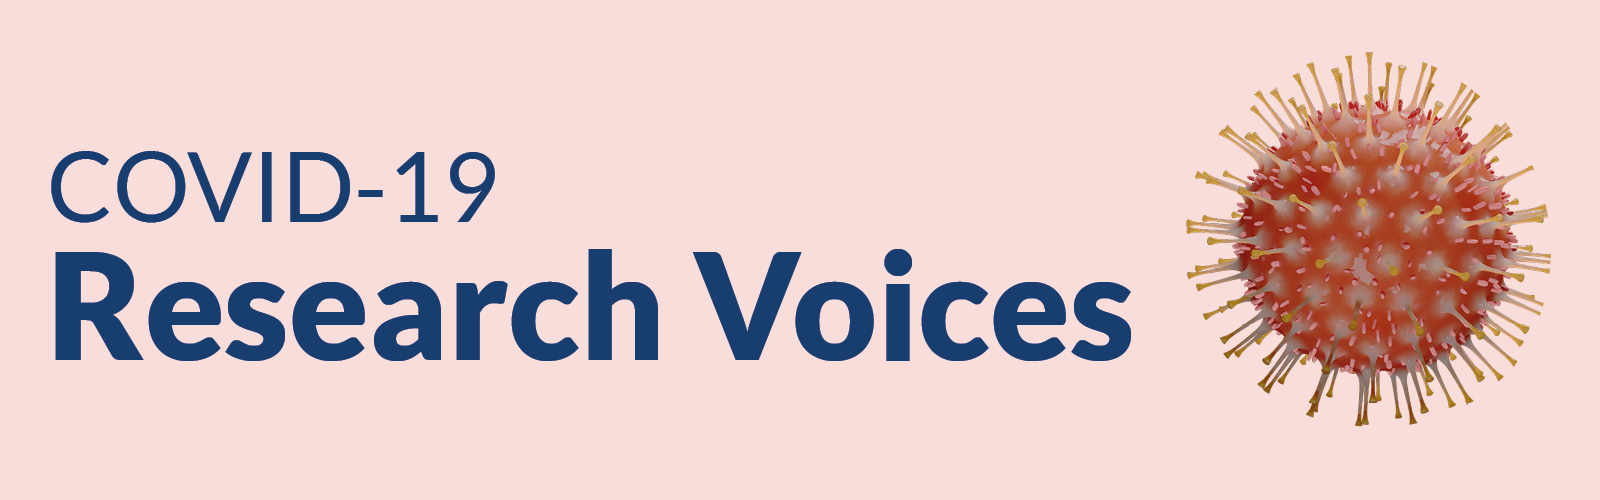 Covid19 Research Voices blog series CRN West Midlands